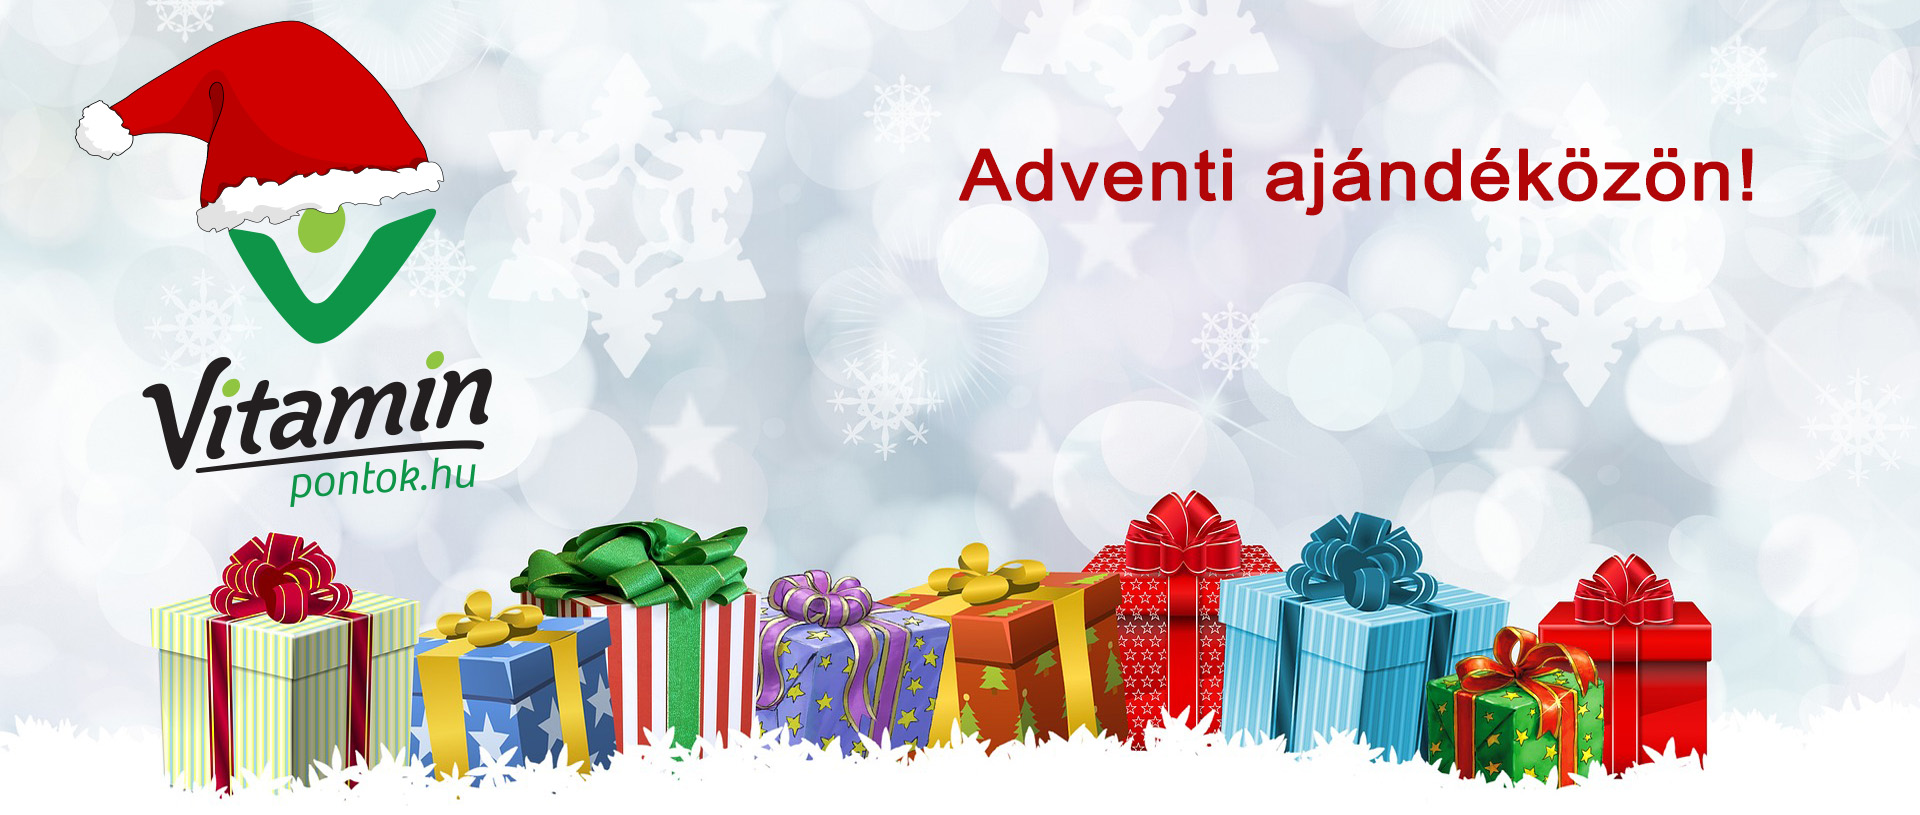 adventi_ajandekozon_web